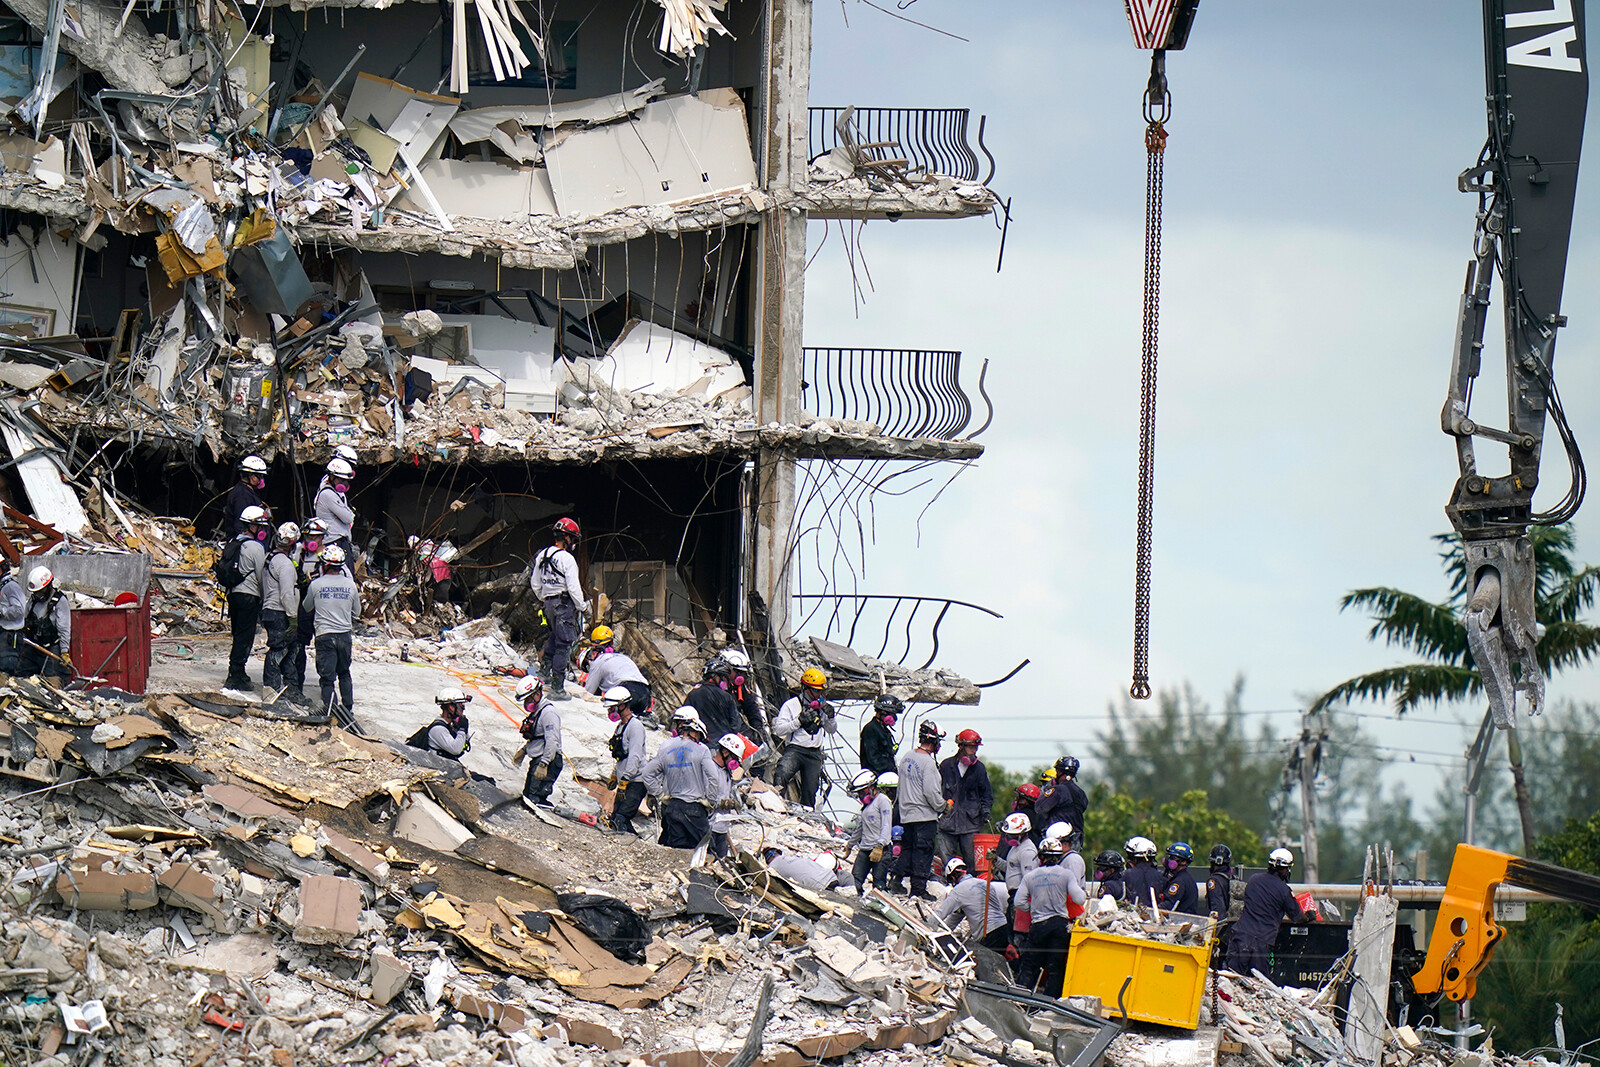 <i>Lynne Sladky/AP</i><br/>Rescue workers search in the rubble at the Champlain Towers South condominium on June 28 in the Surfside area of Miami.